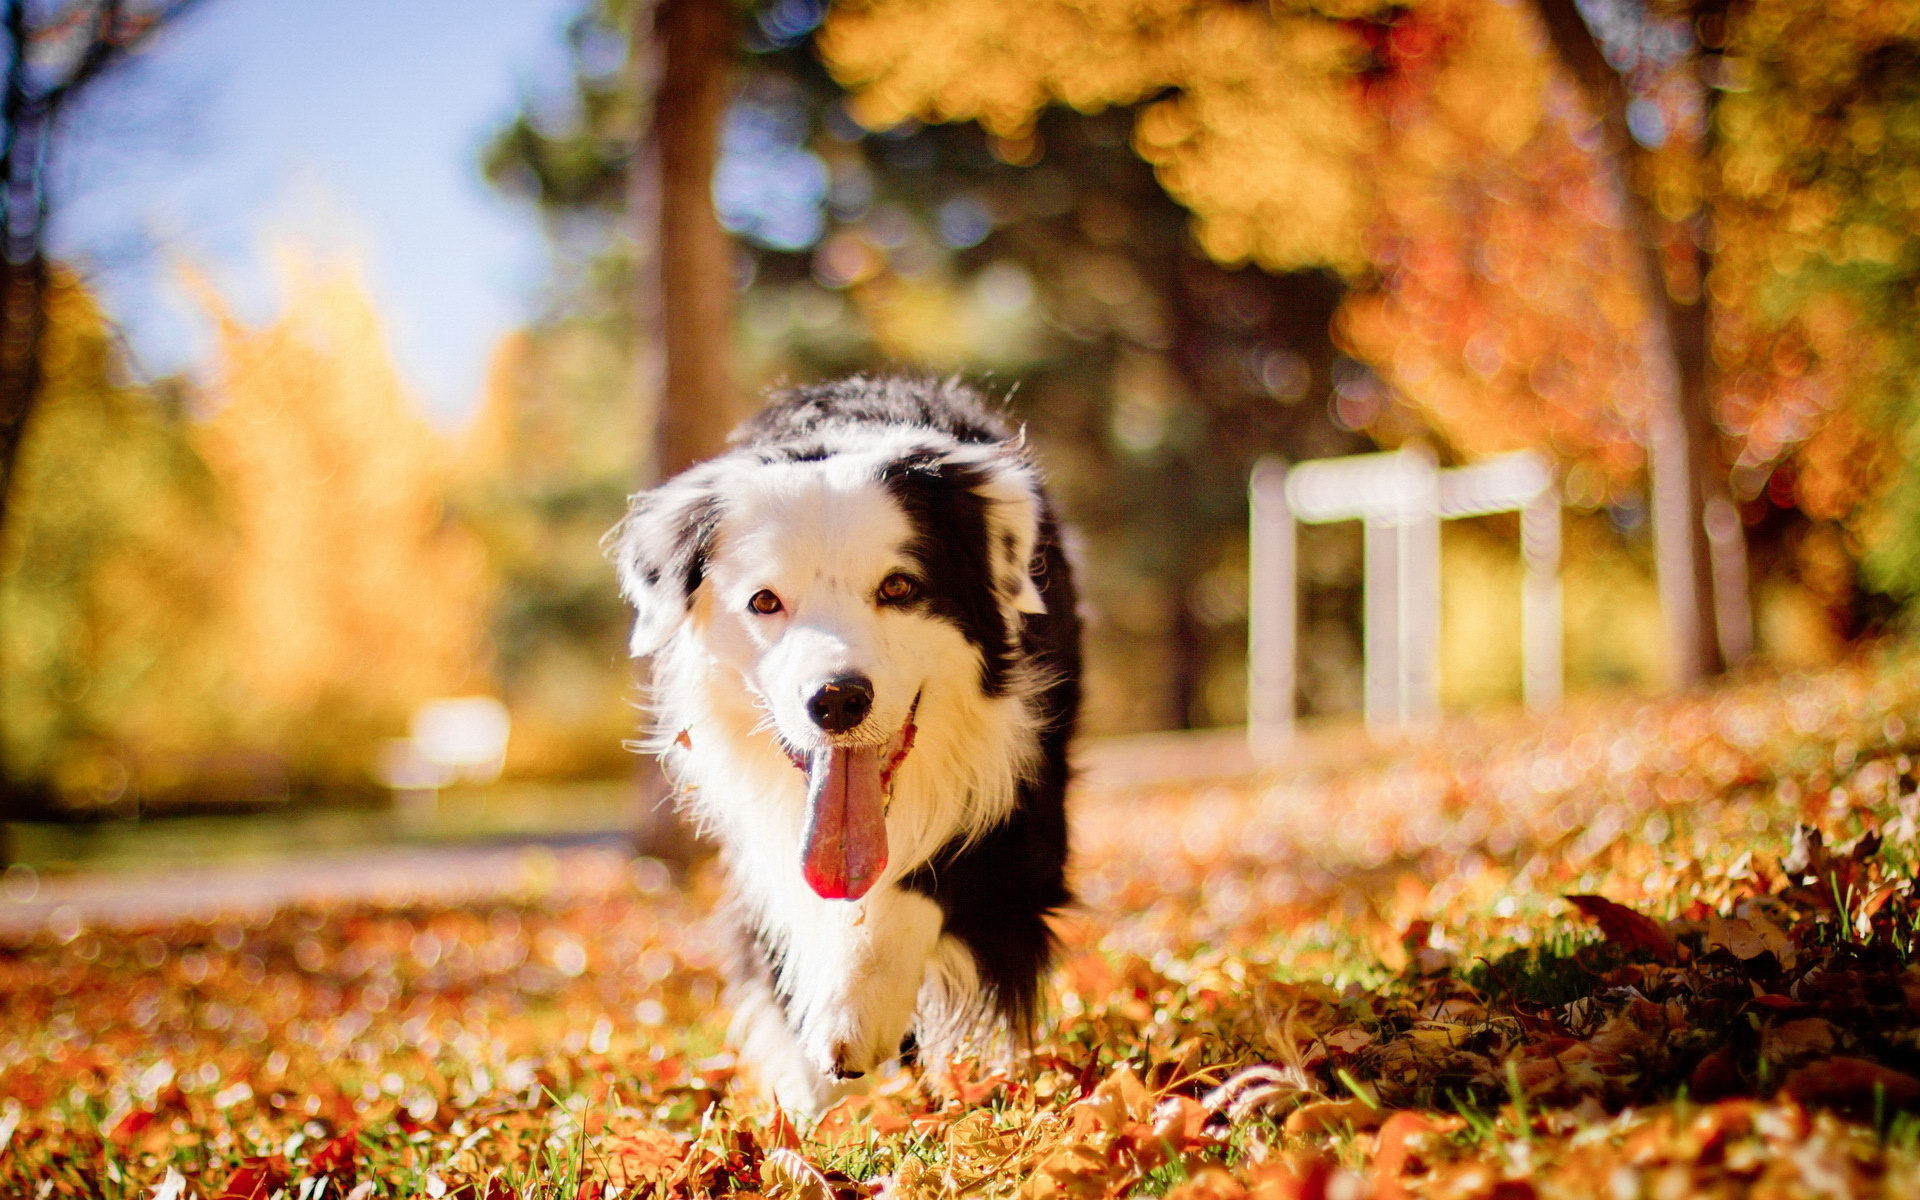 Cute dog in romantic autumn wallpapers and images   wallpapers 1920x1200